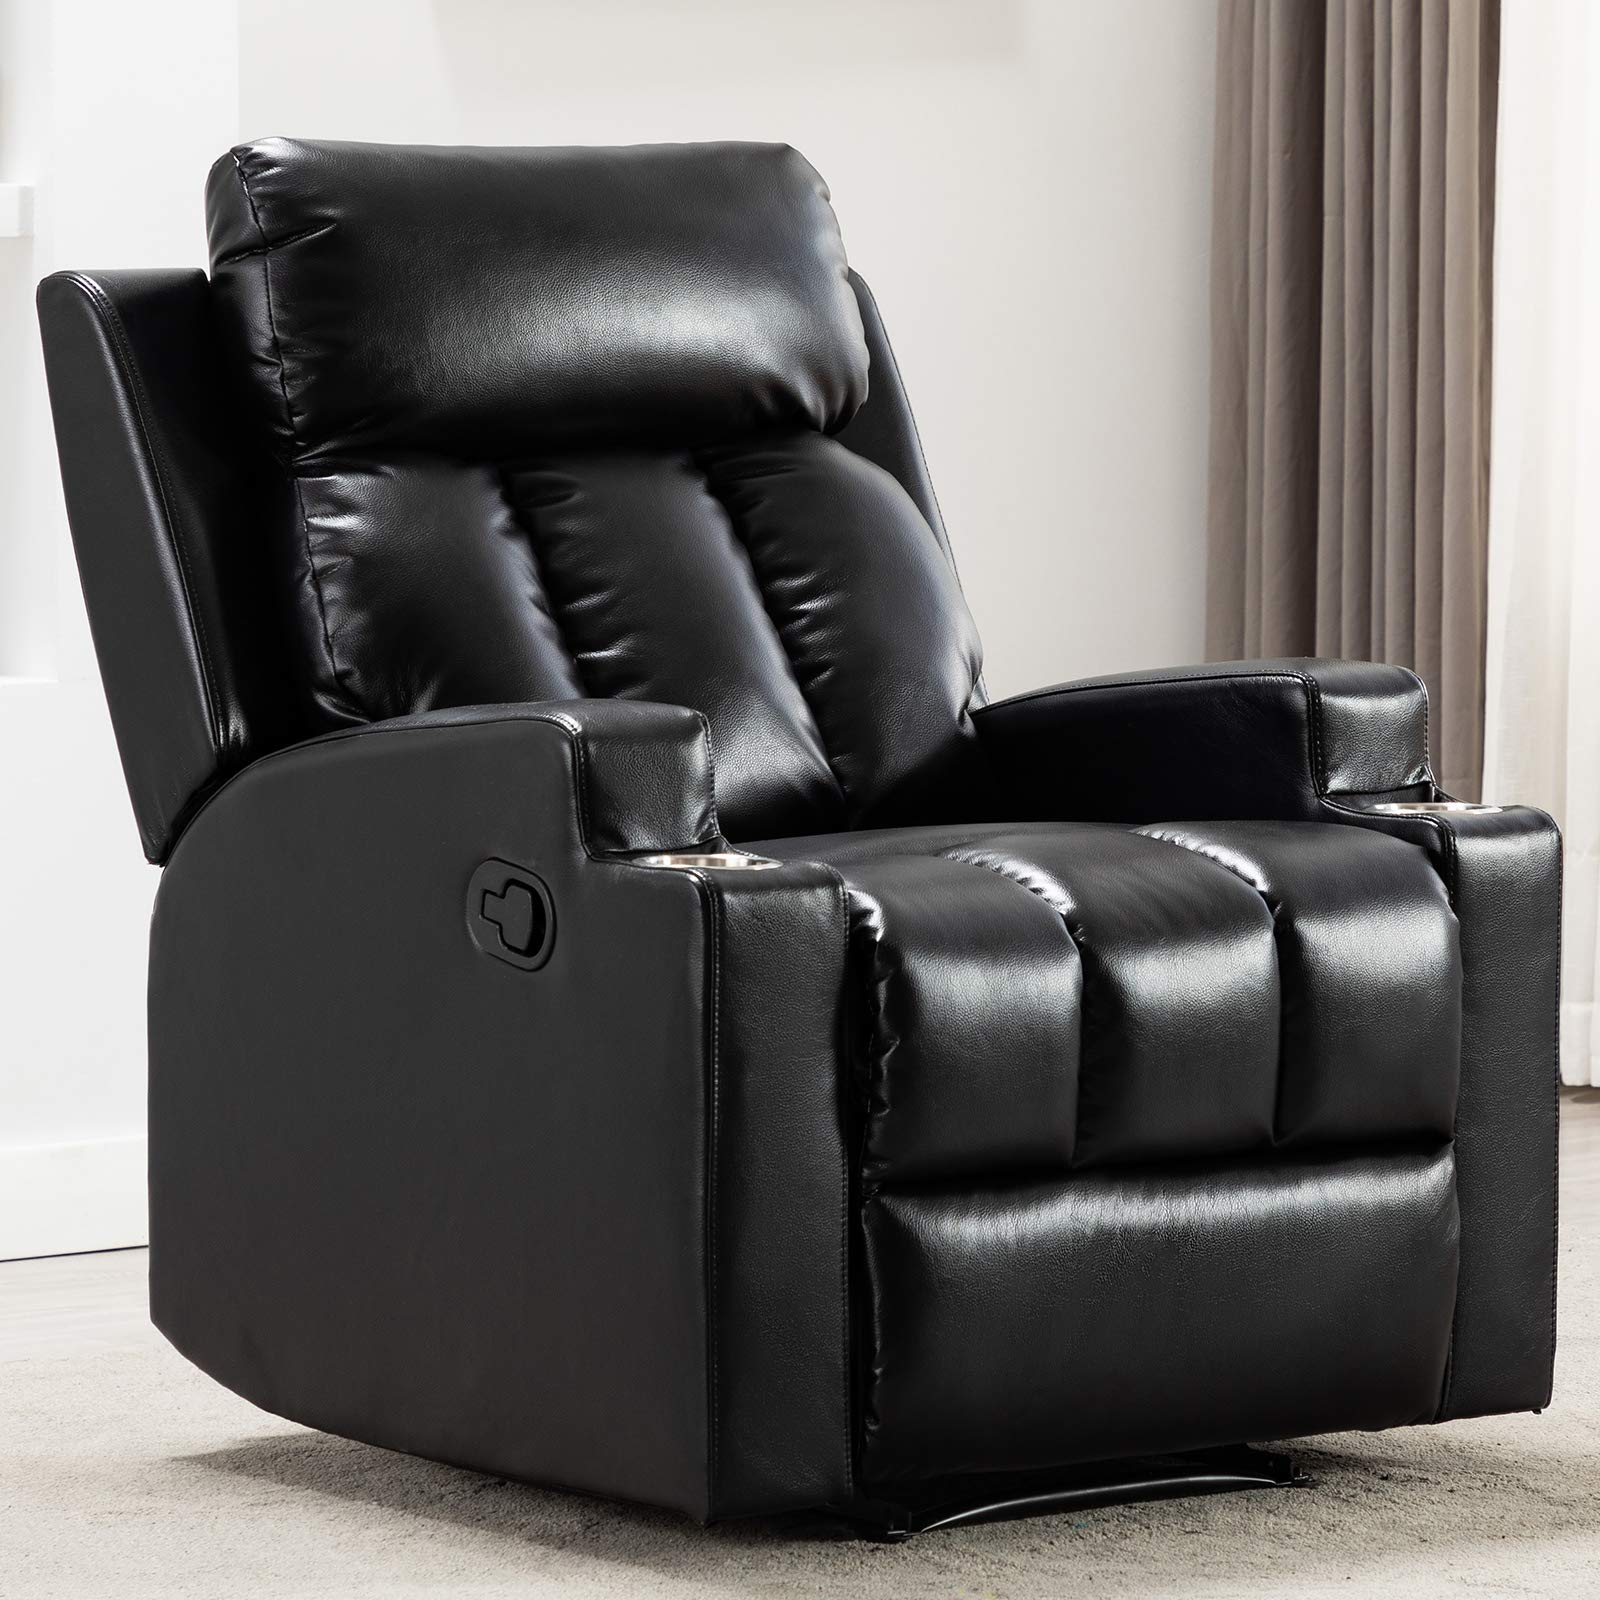 ANJ Chair Recliner Contemporary Theater Recliner with 2 Cup Holders Black by ANJ HOME